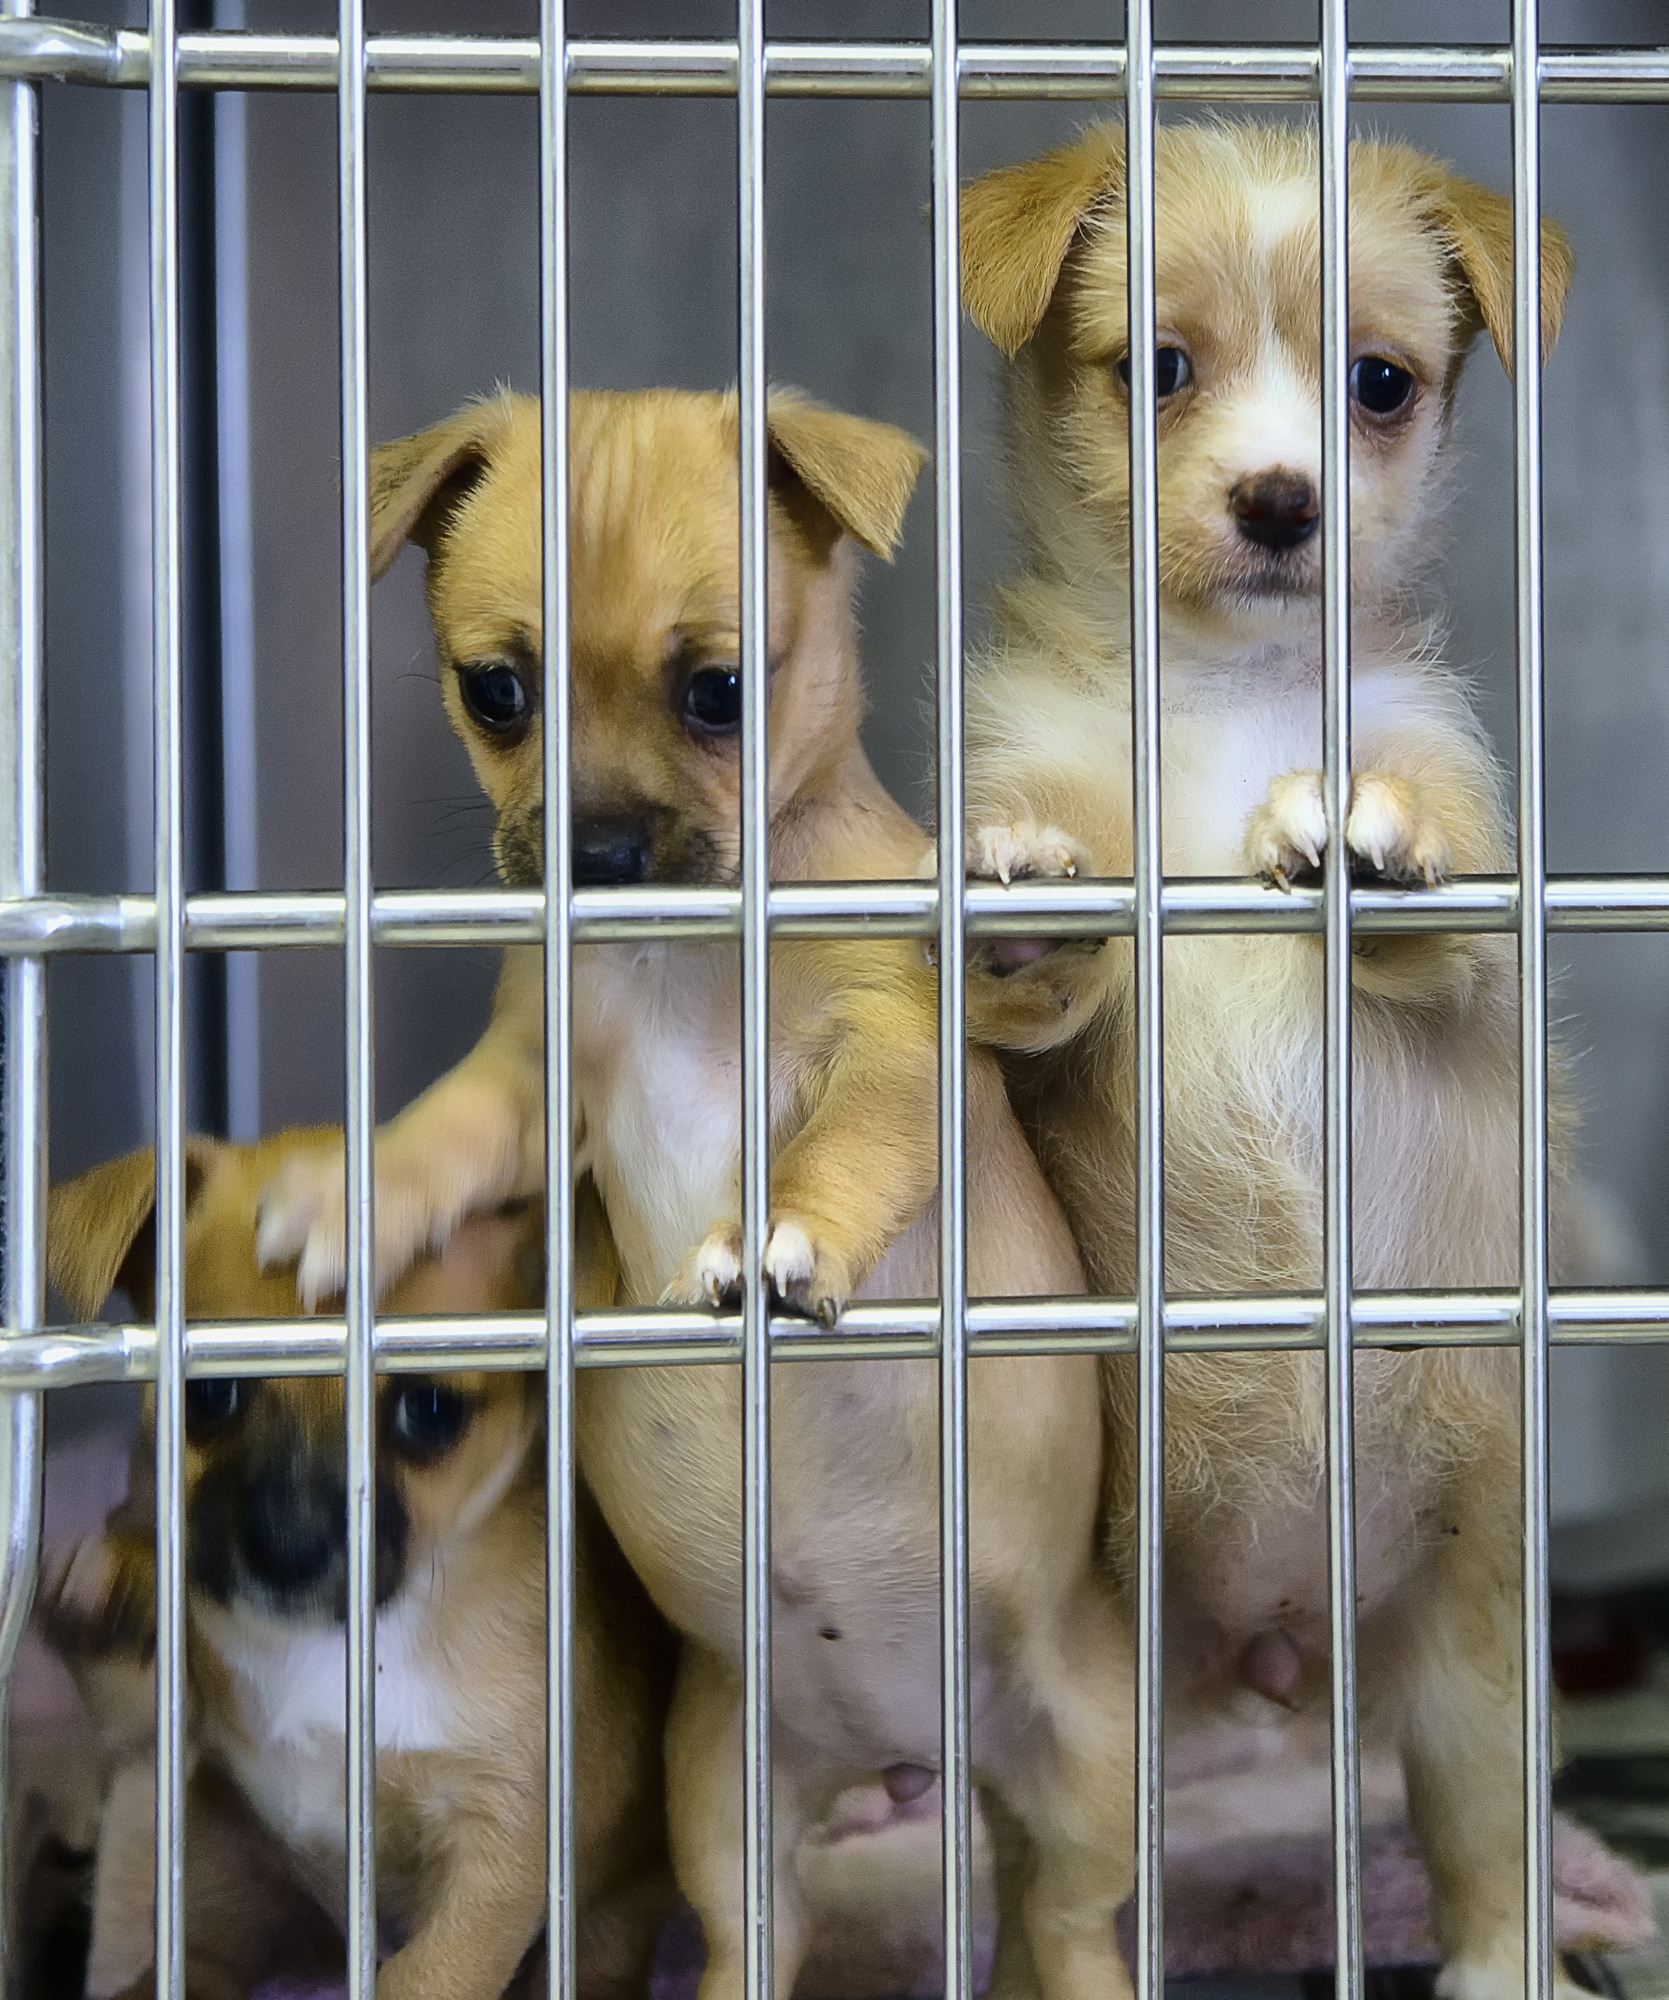 Why do animal charities get so many donations?